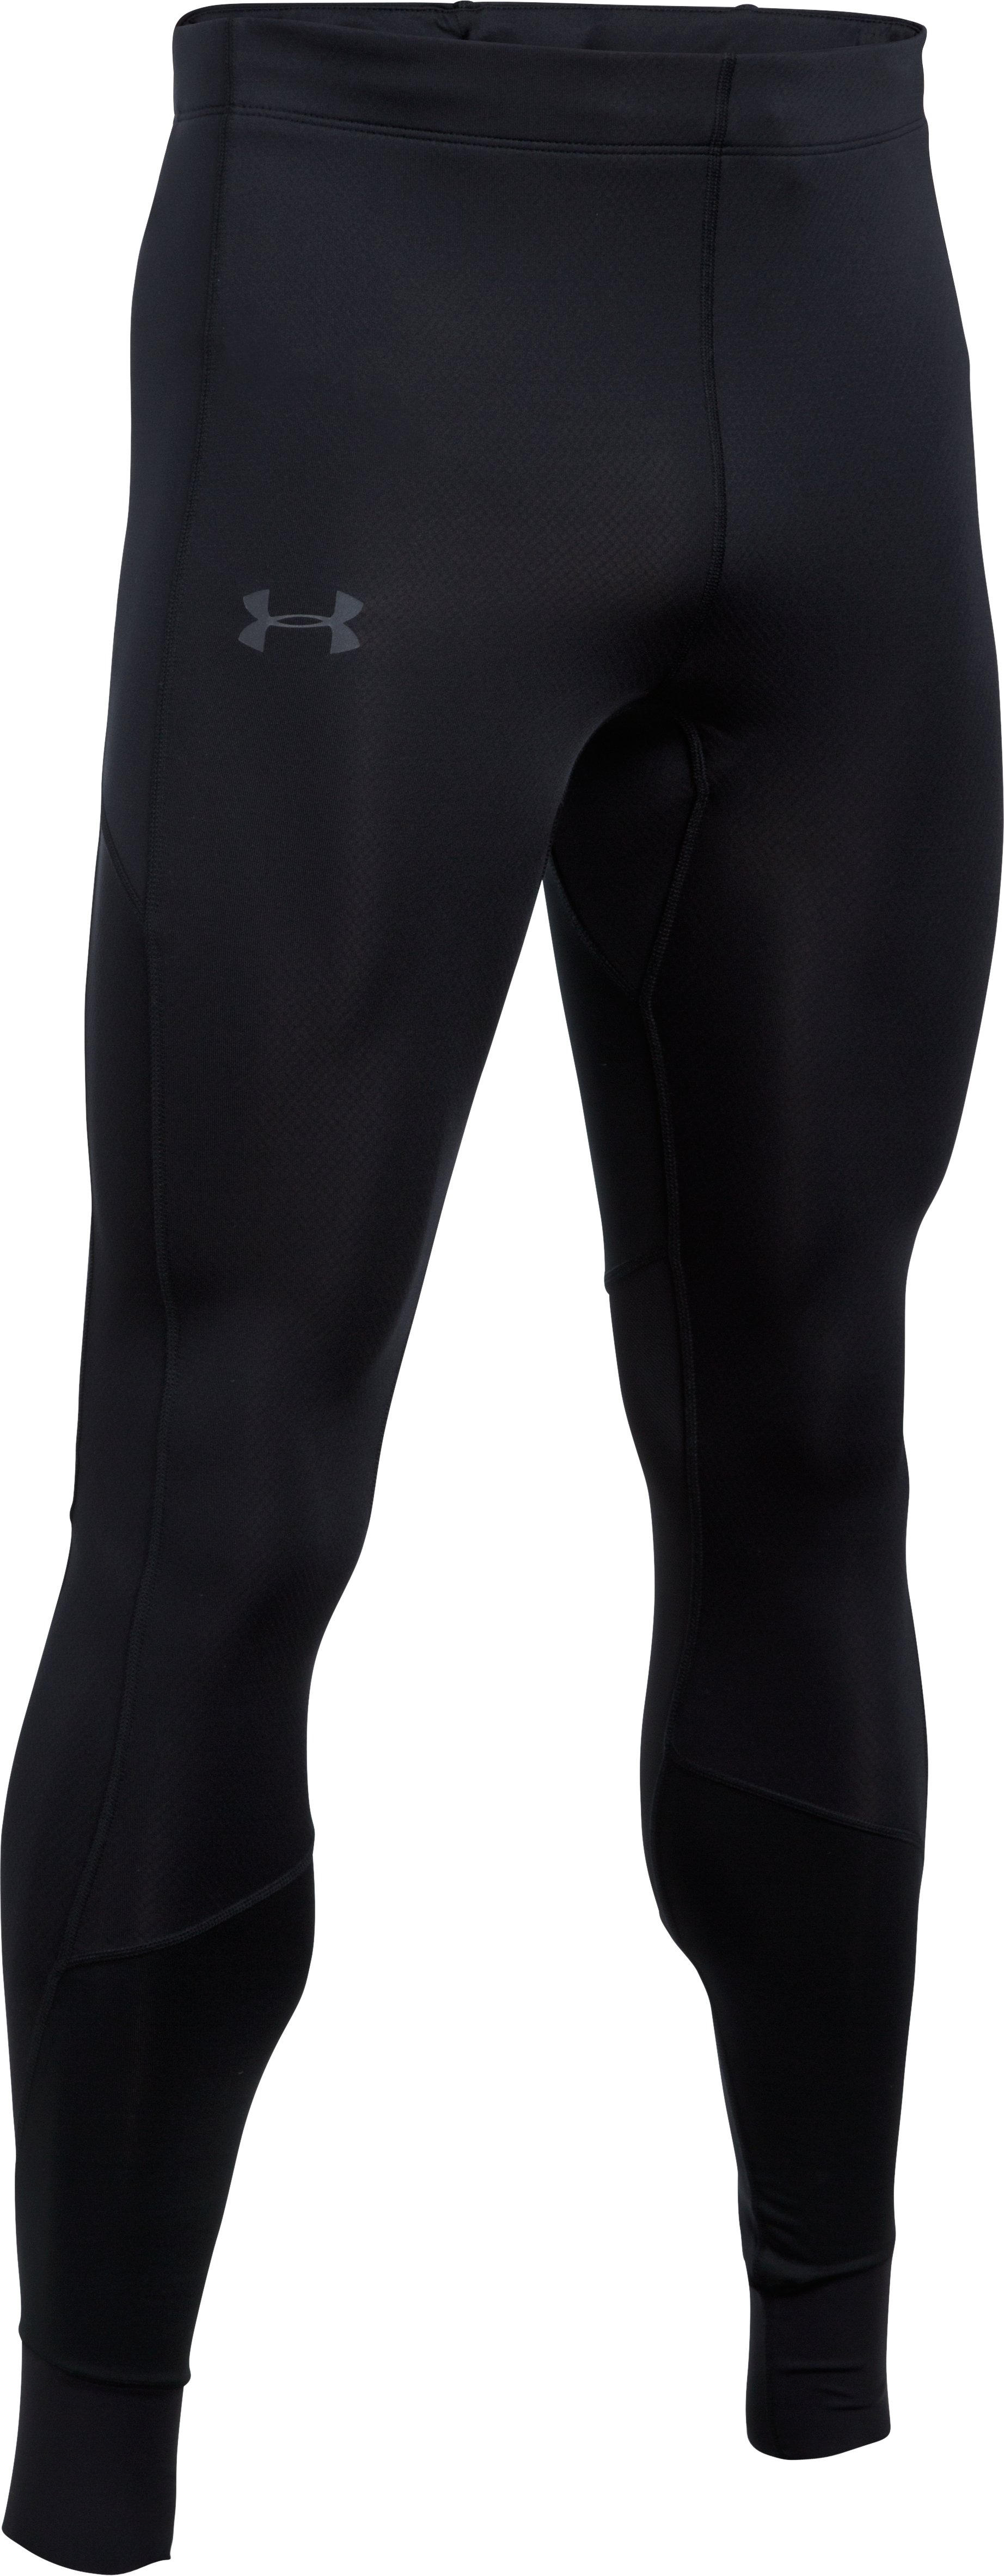 Men's ColdGear® Reactor Run Leggings, Black ,